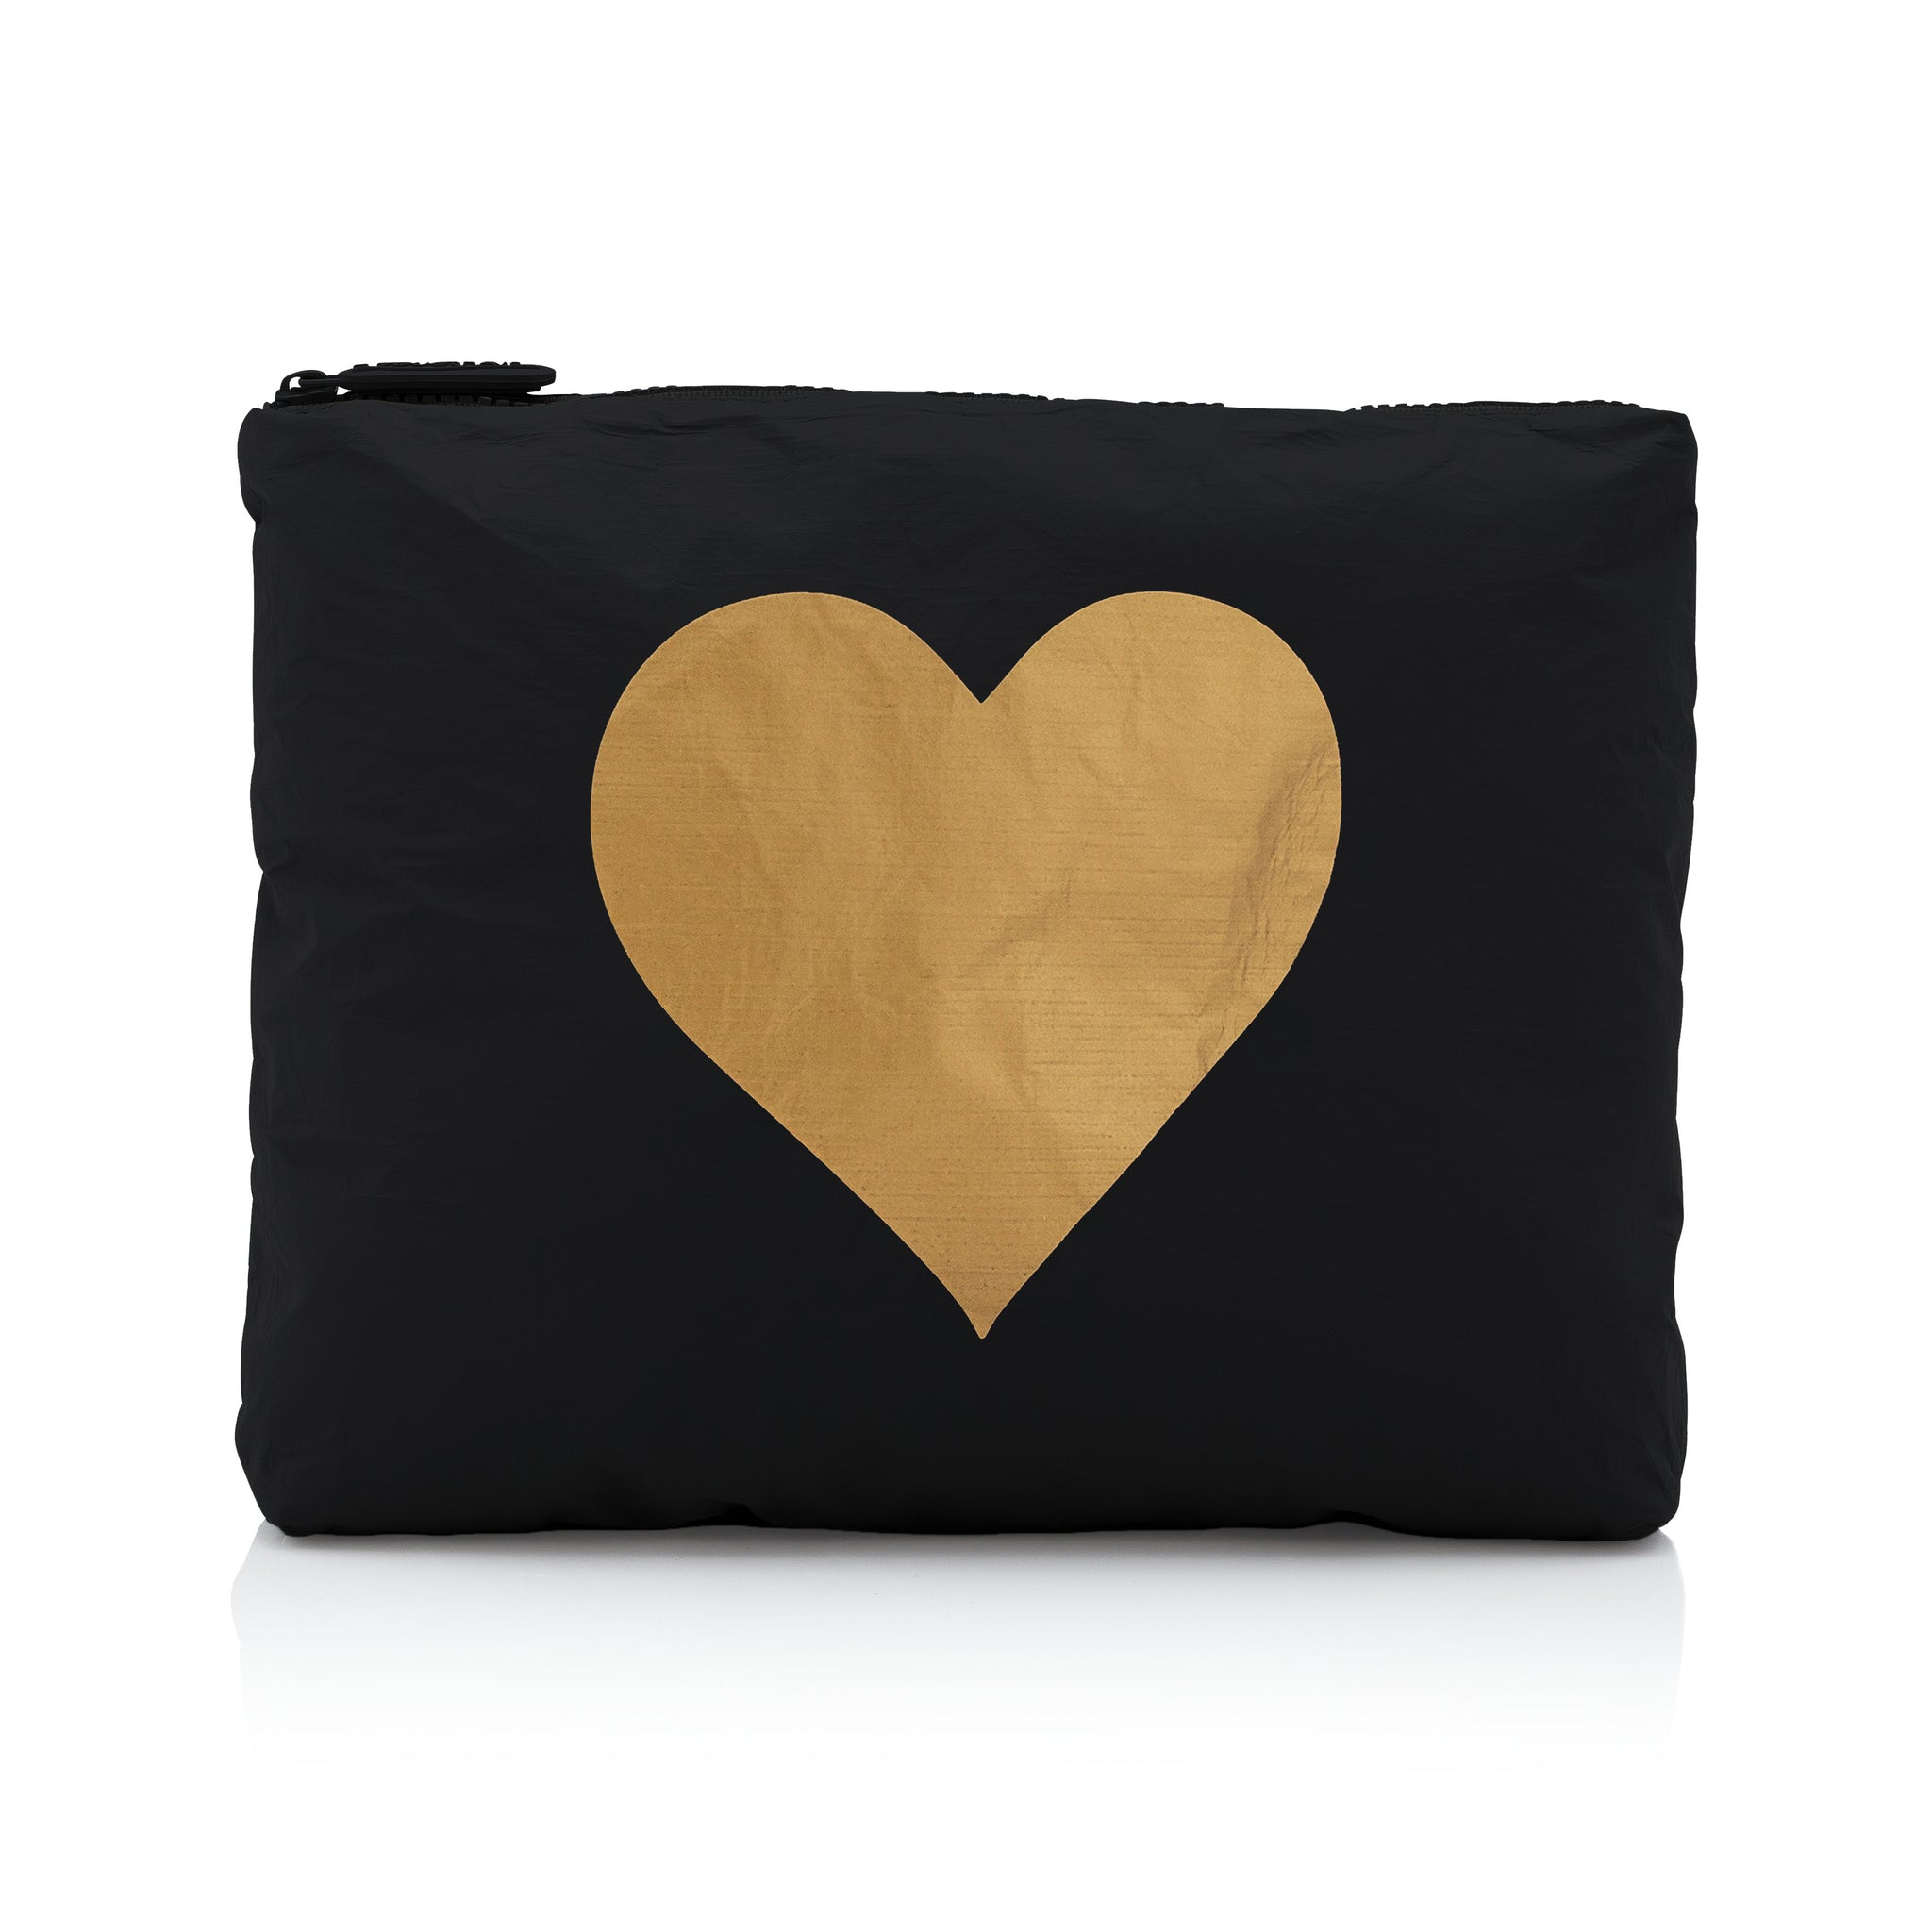 Toiletry Bag - Hi Love Travel Pouch - Medium Pack - Black with Gold Heart